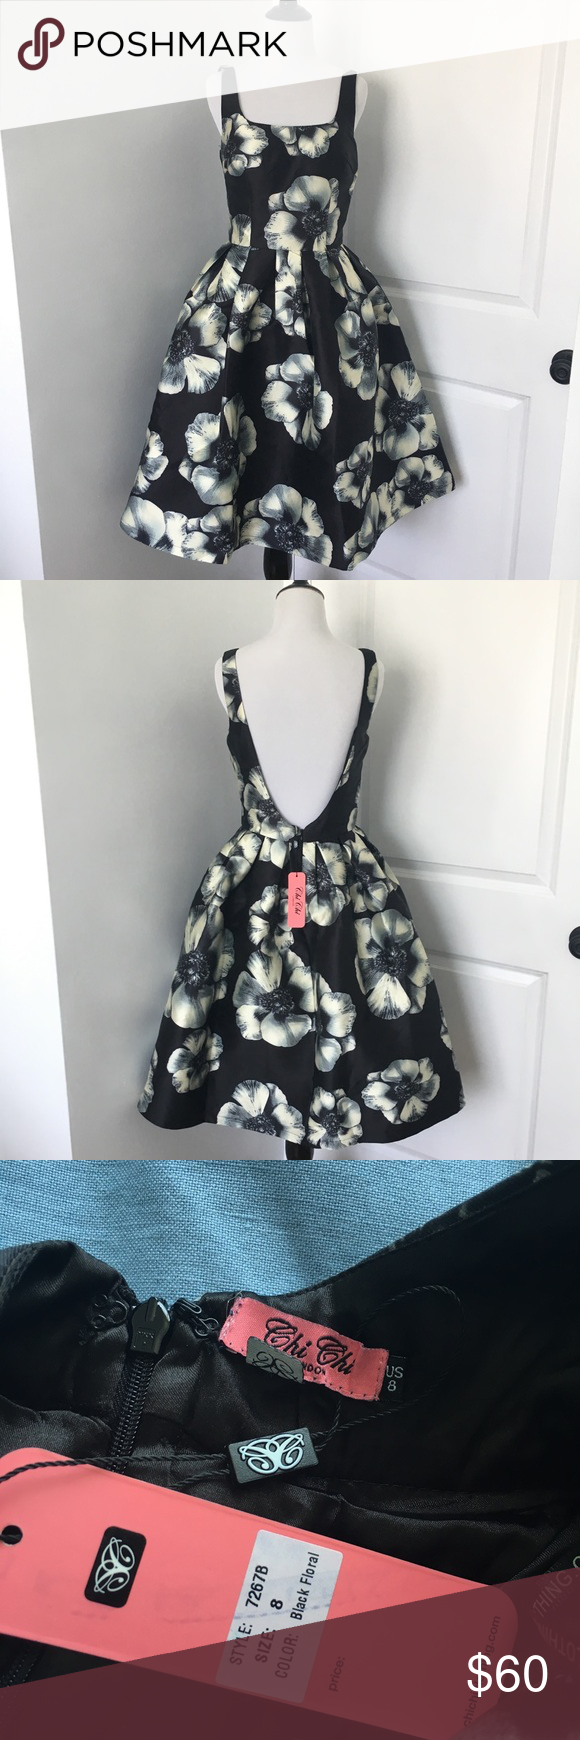 Modcloth Open Back Midi Dress Super cute Back with off white / cream colored floral pattern with a low Open Back  Size 8 but would fit a 6 better  Brand new with tags! The brand is Chi Chi London and it was bought from Modcloth but it's also sold at Asos Modcloth Dresses Midi